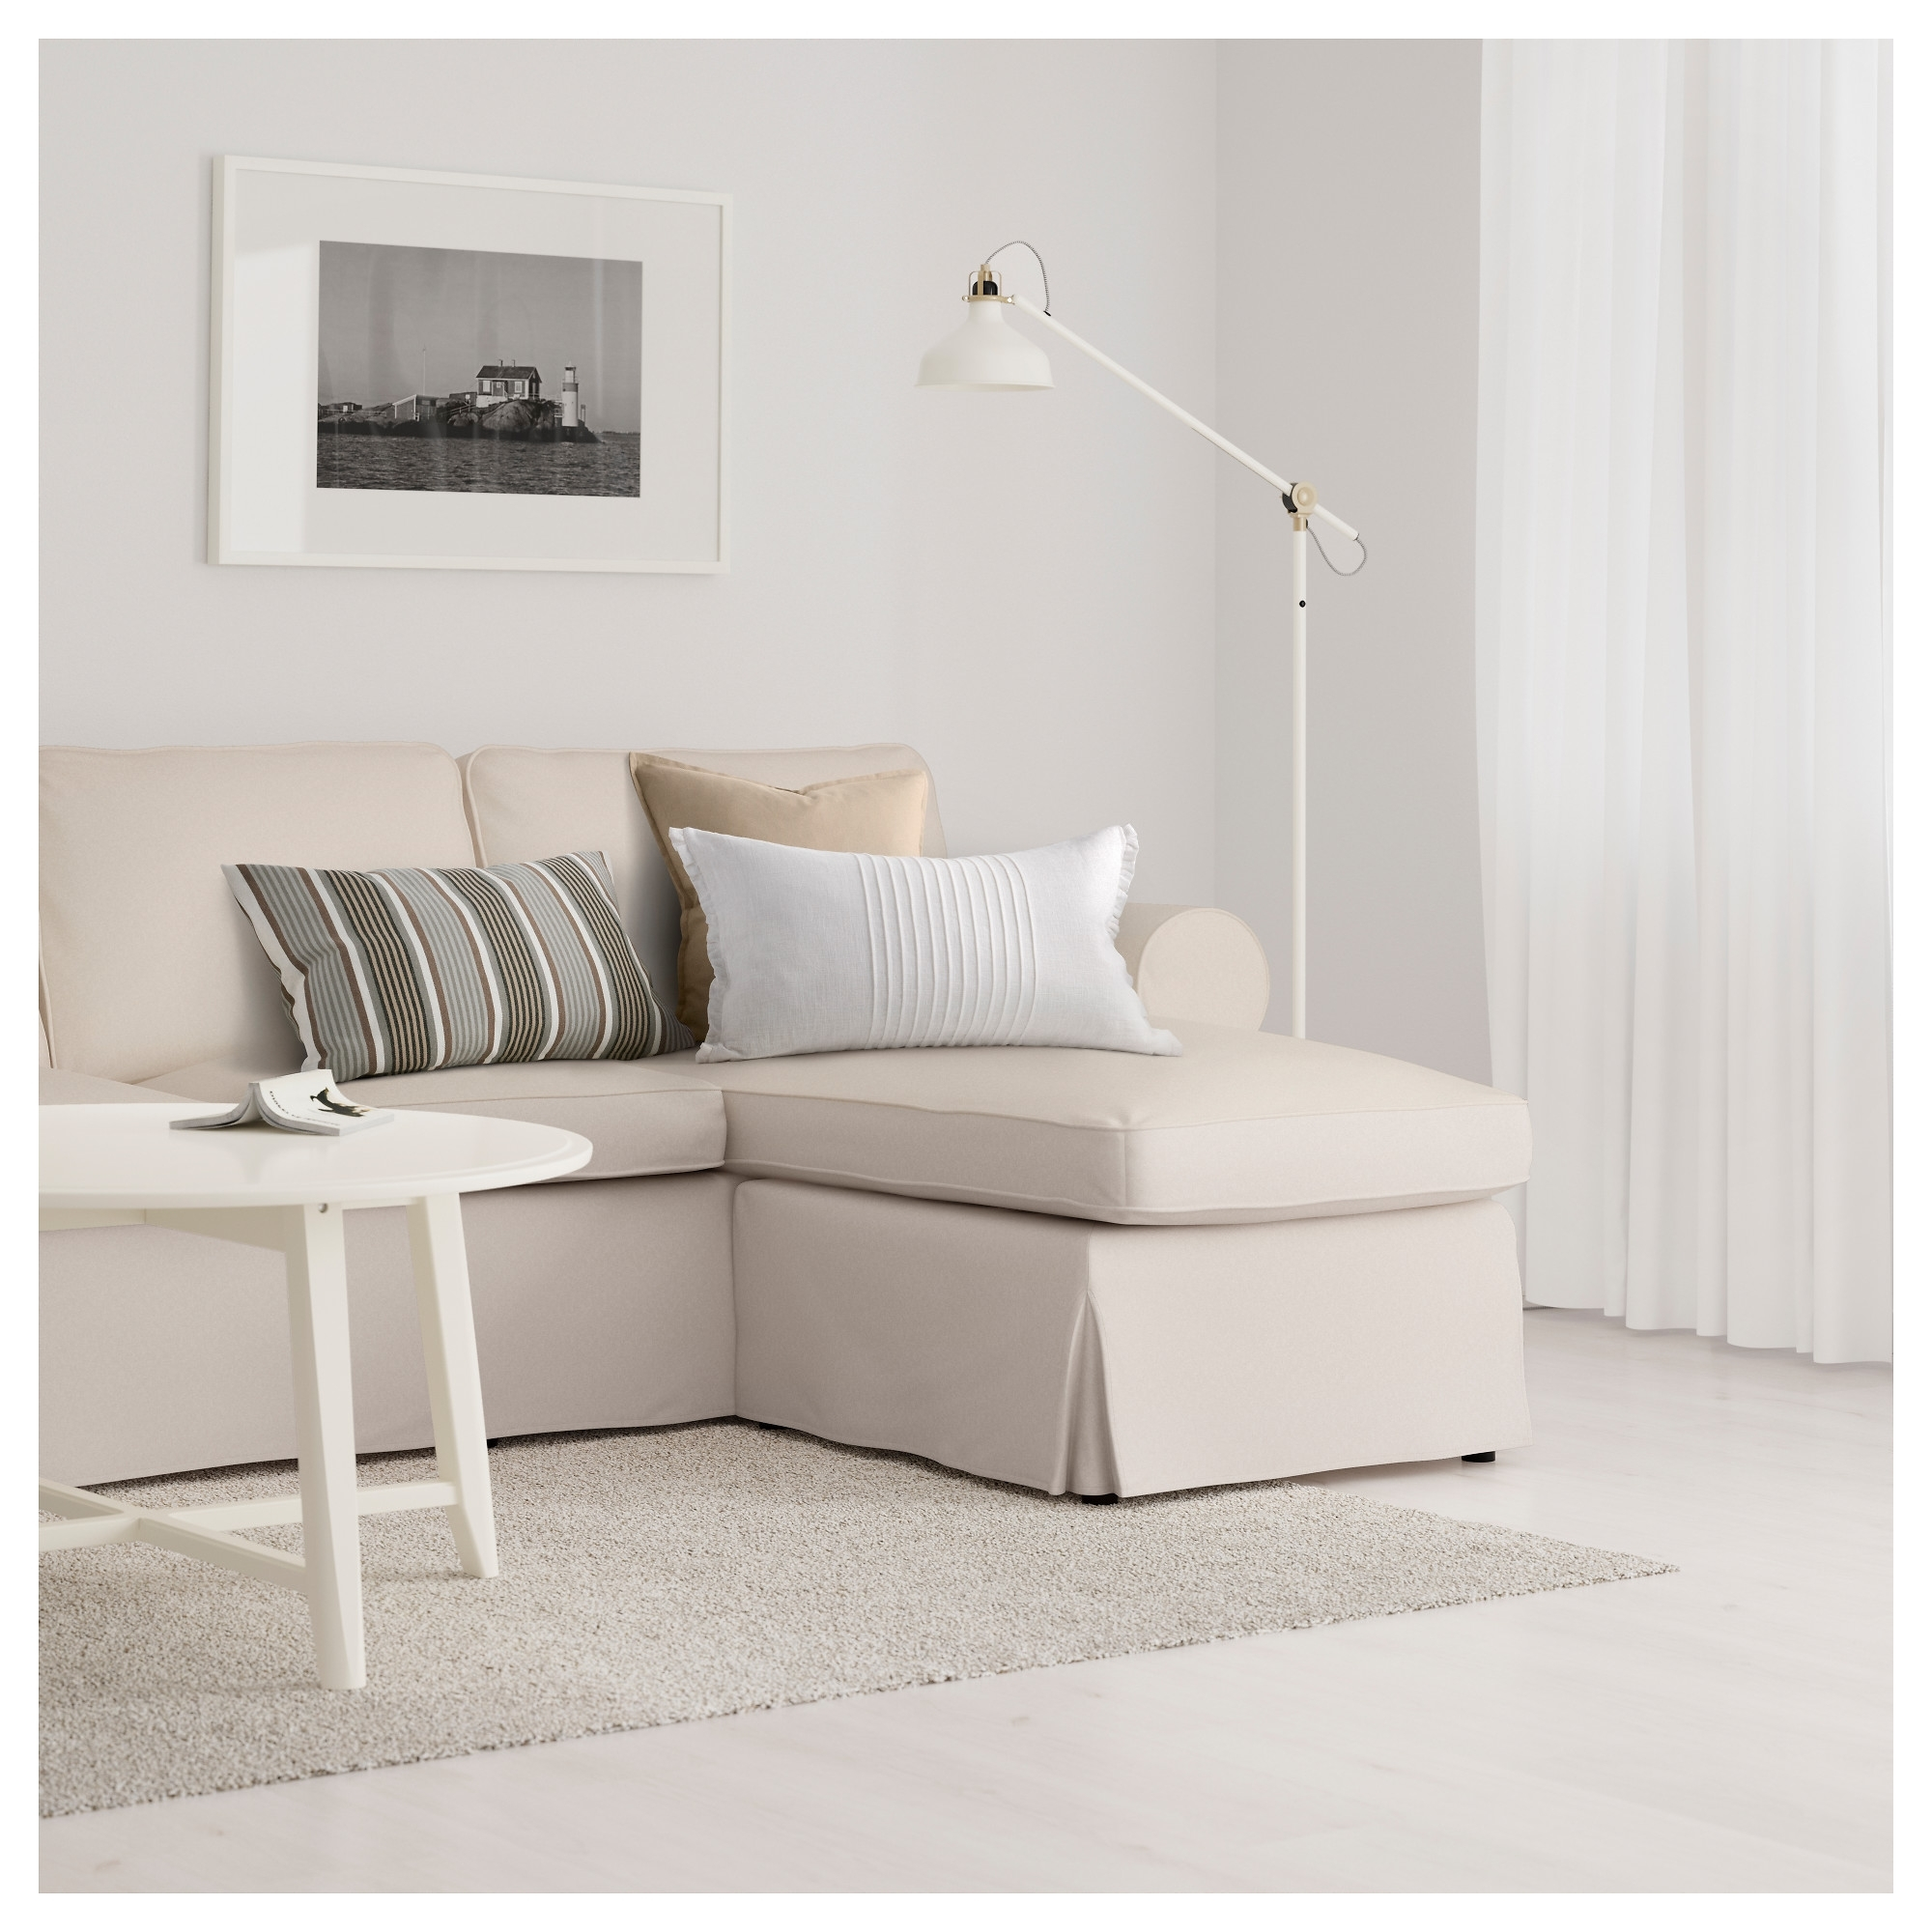 Newest Ikea Ektorp Loveseat Chaises Throughout Ektorp Sofa – With Chaise/nordvalla Light Blue – Ikea (View 14 of 15)